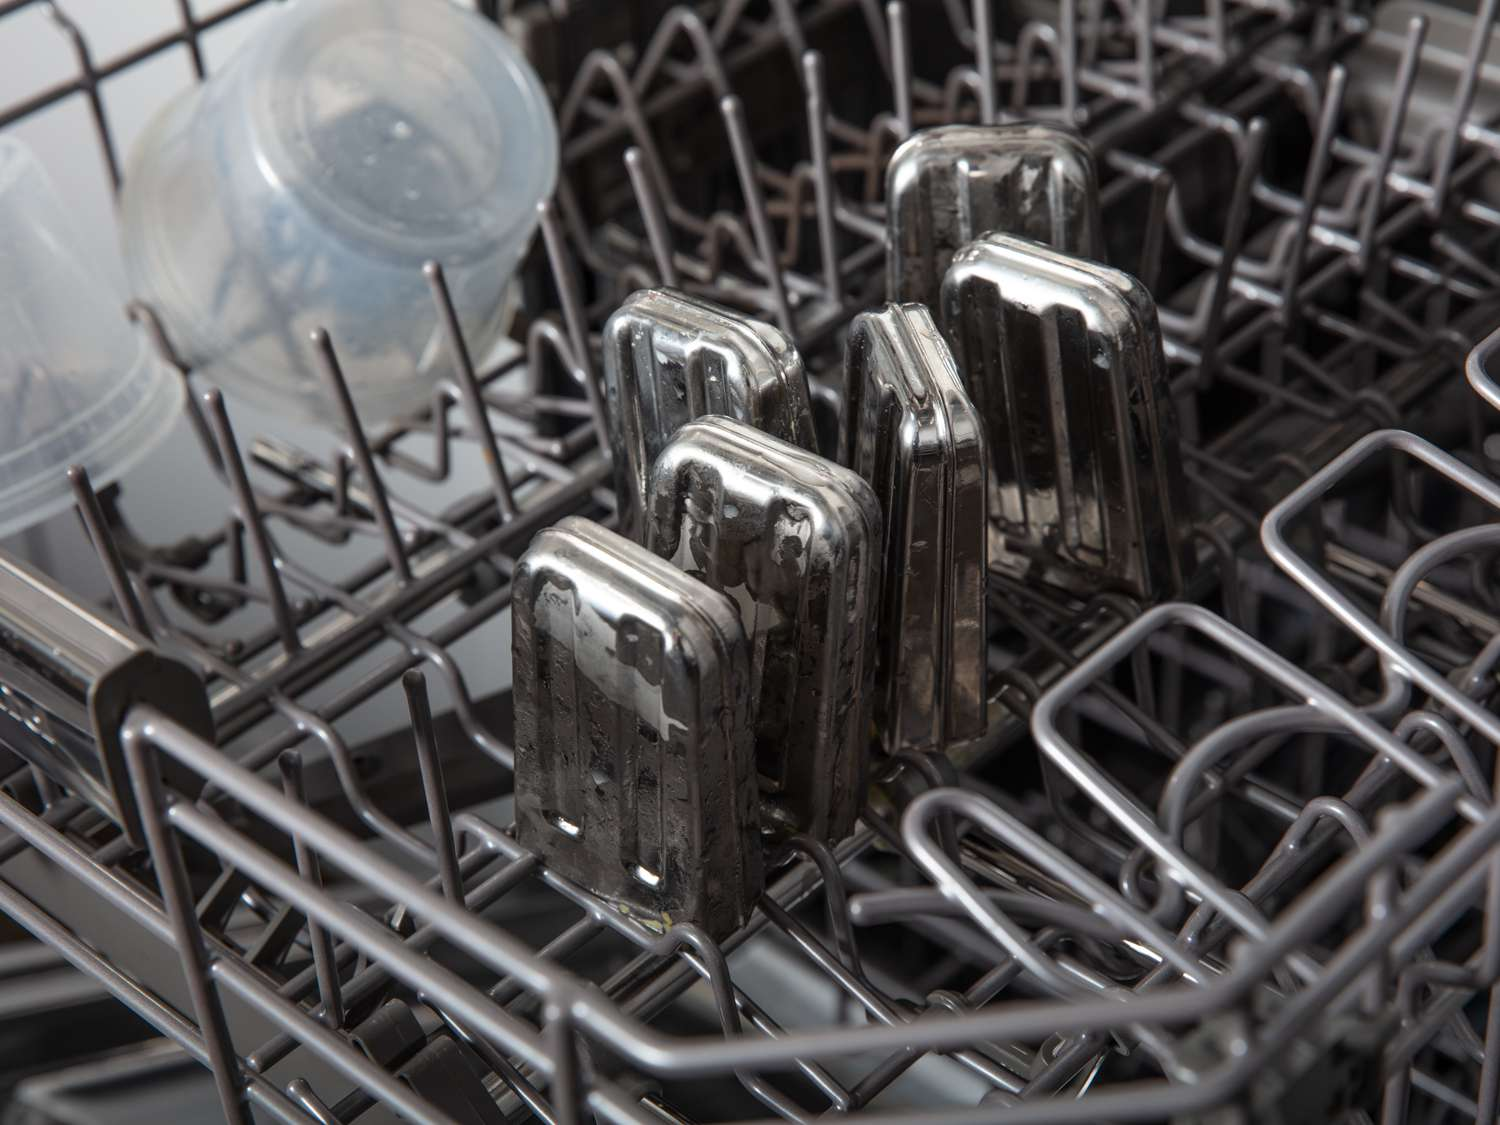 Popsicle molds in the dishwasher